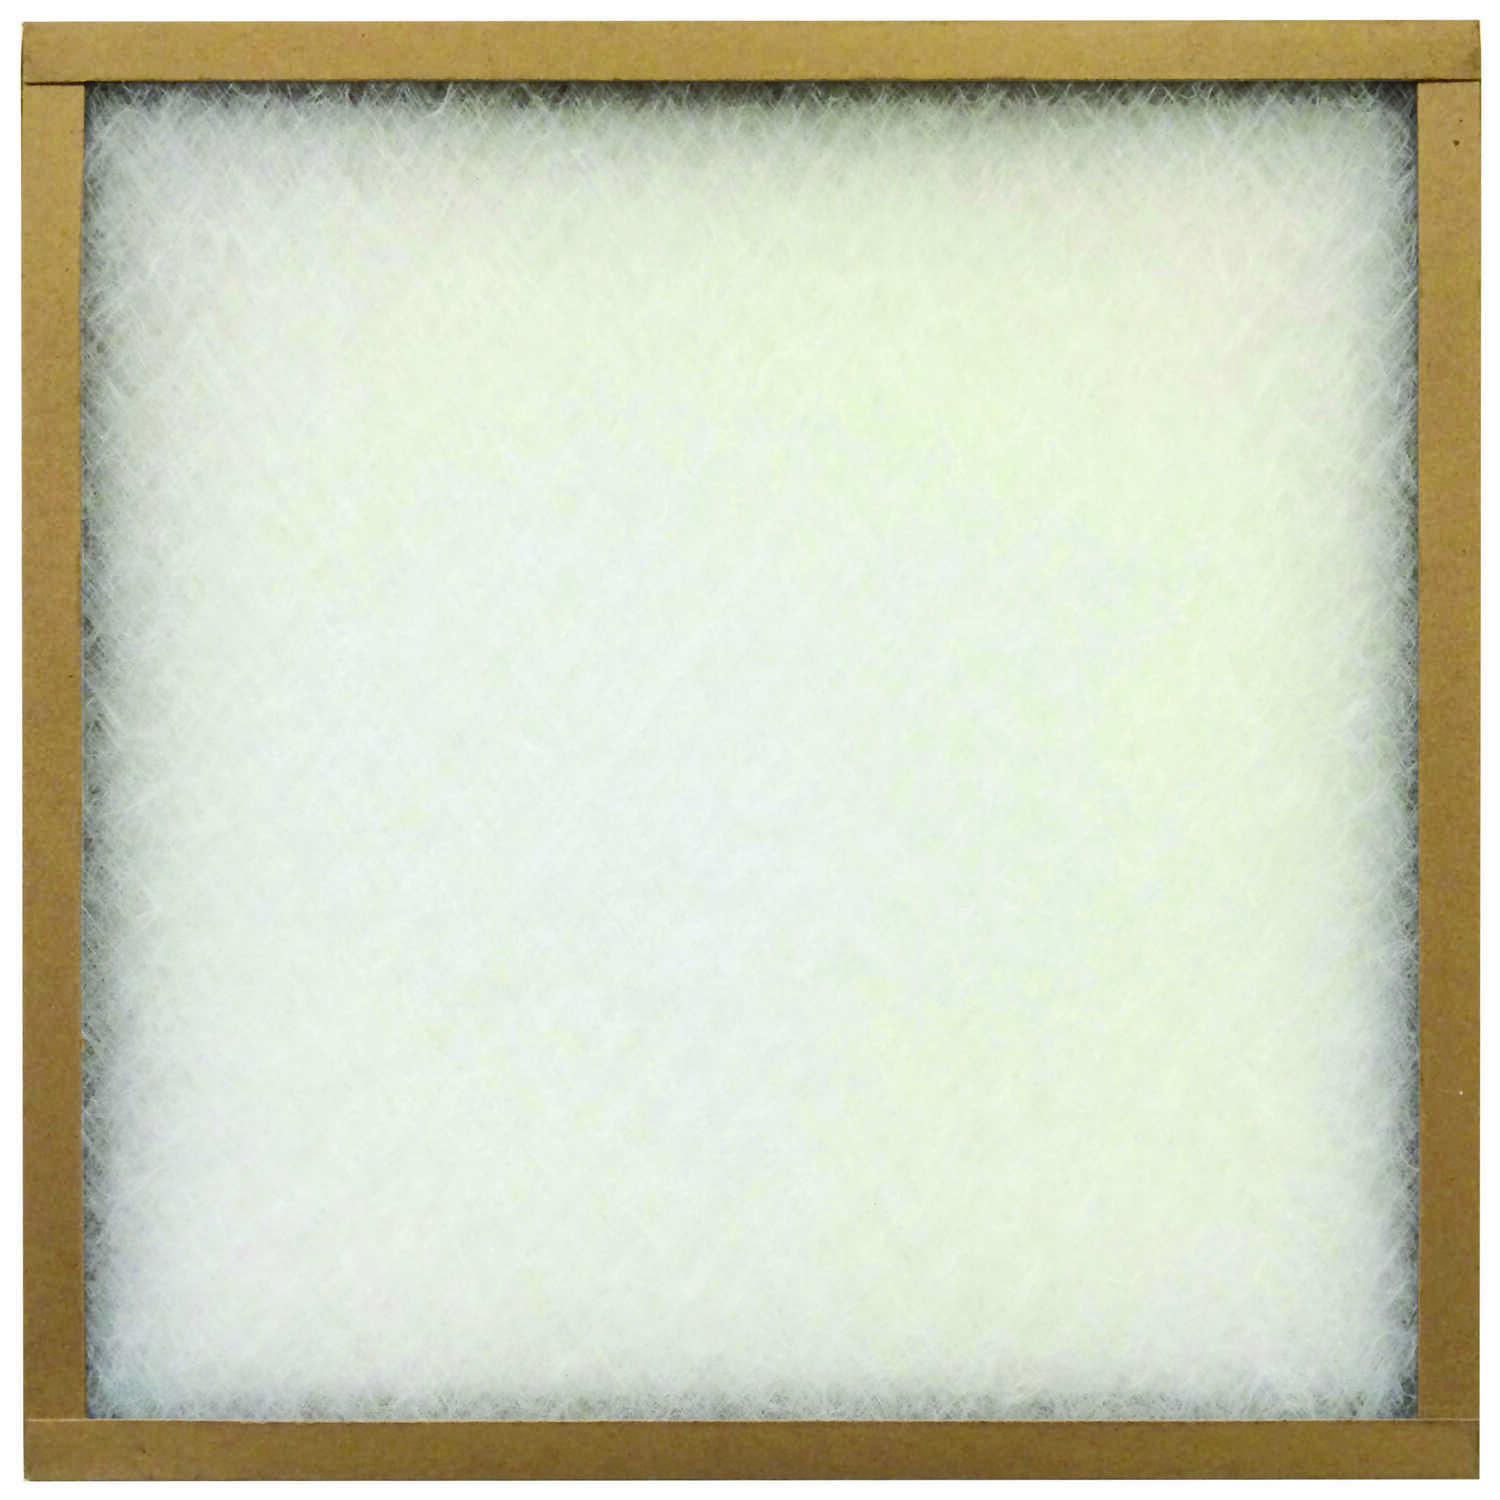 Ace  25 in. H x 14 in. W x 1 in. D Fiberglass  Air Filter